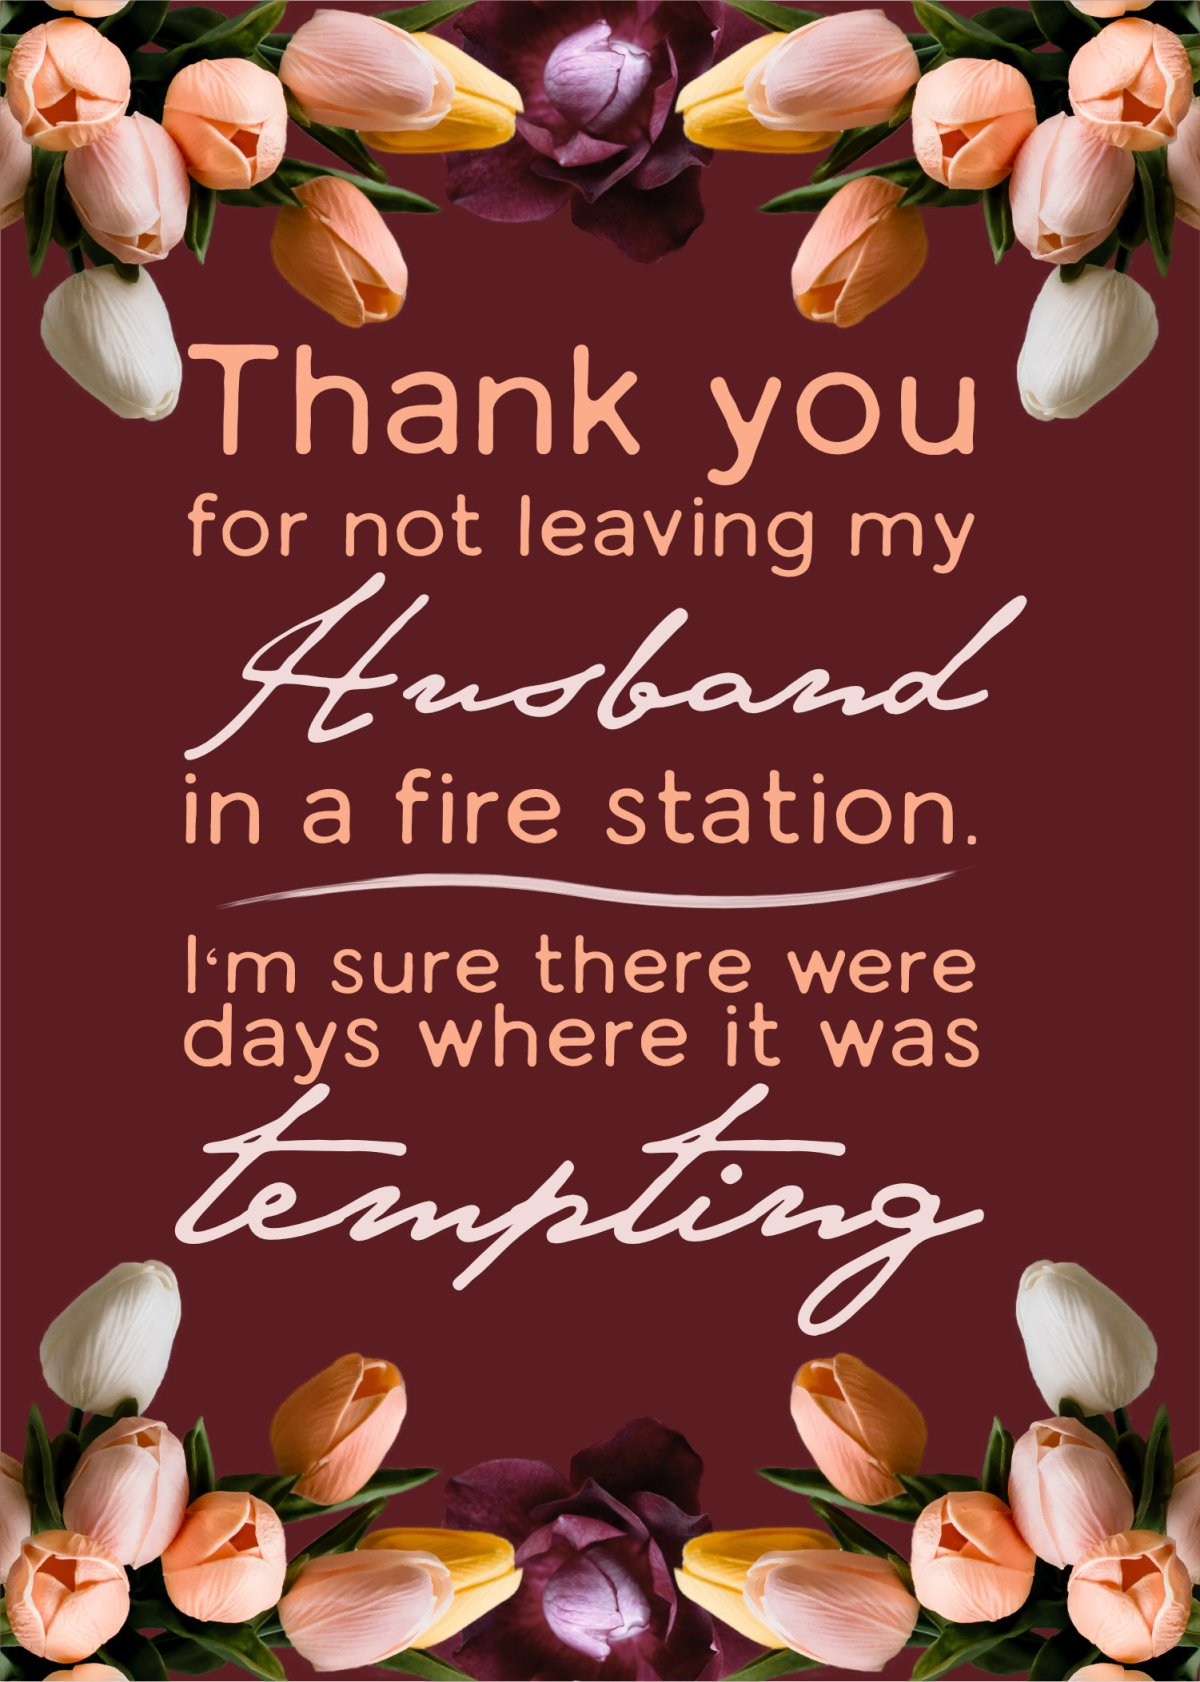 """text reading """"Thank you for not leaving my Husband in a fire station. I'm sure there were days were it was tempting."""" Around the text is a collection of flowers as a border on the top and bottom."""